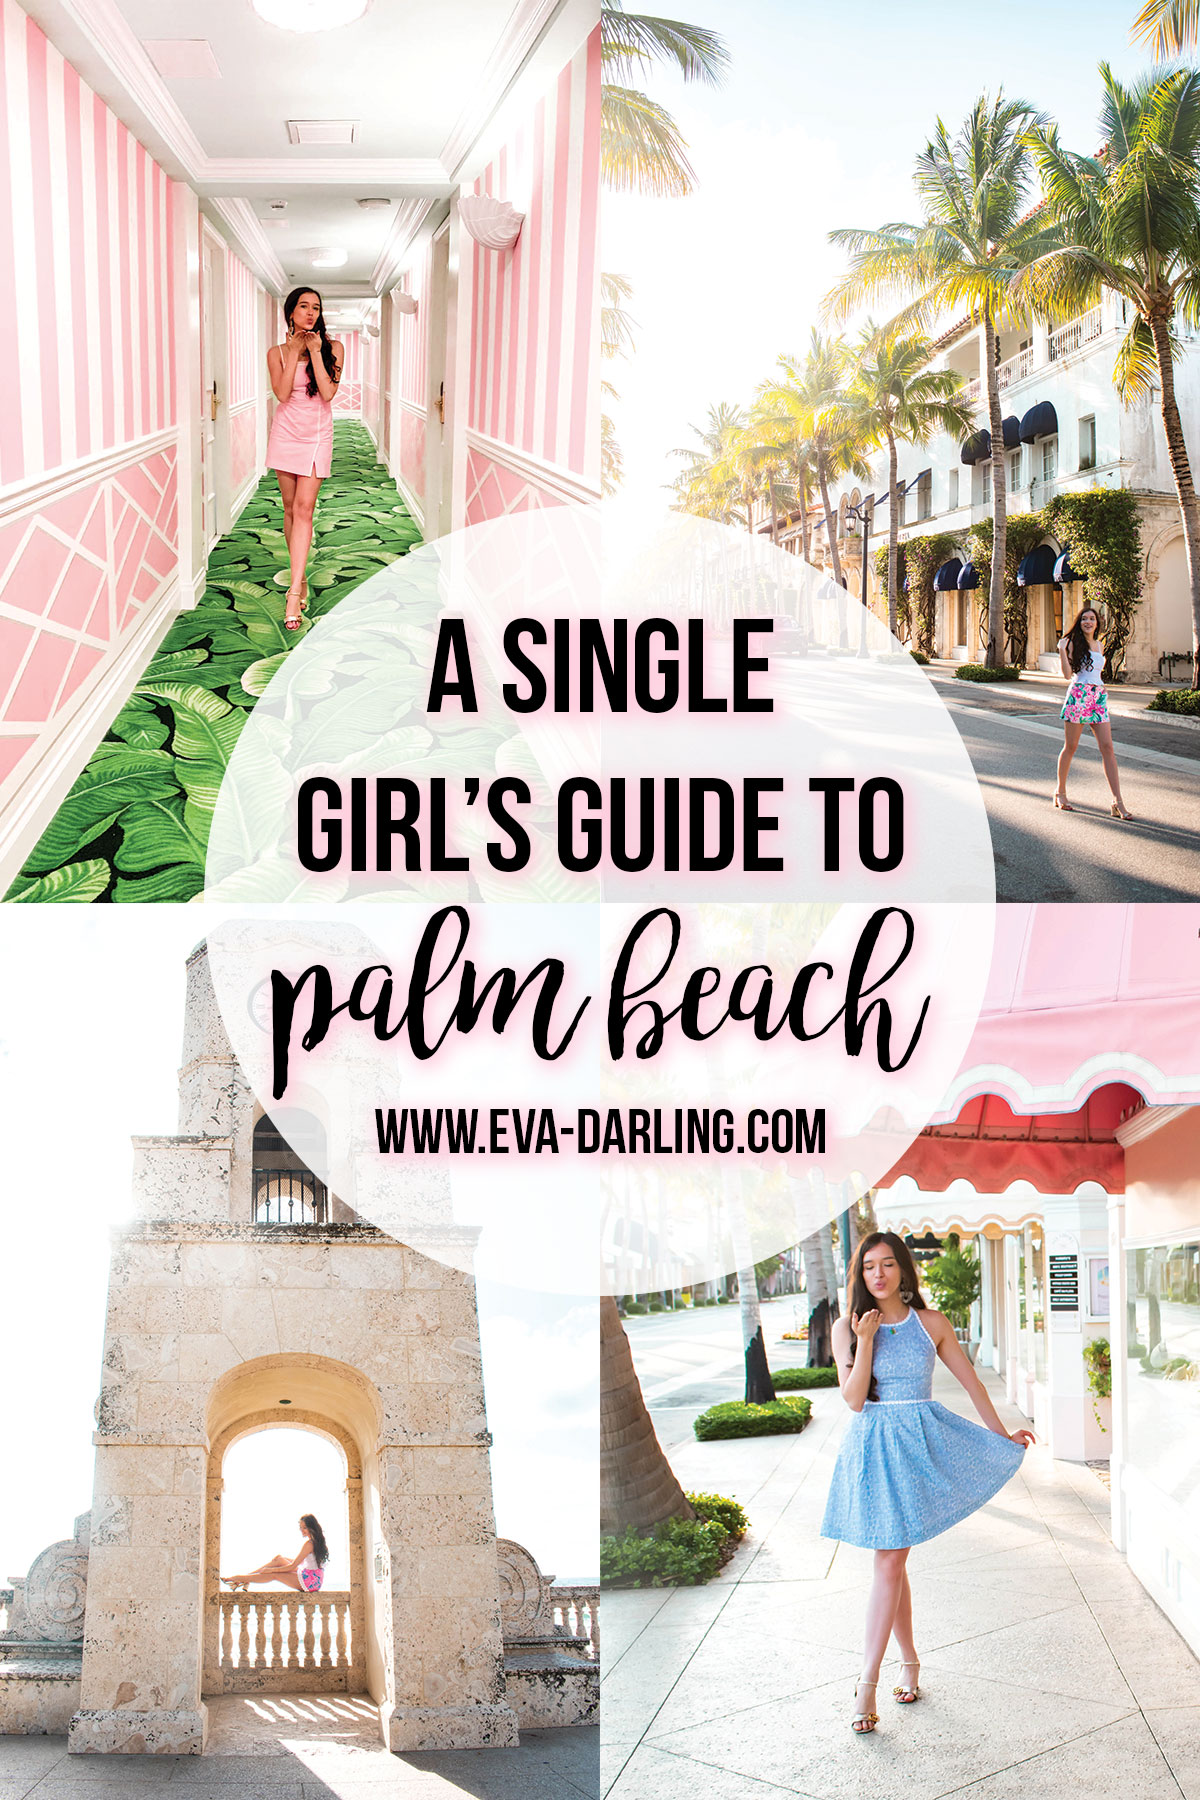 a single girl's guide to palm beach florida worth avenue colony hotel clocktowerlilly pulitzer nicki skort via flora tori dress travel blogger where to go in florida safe solo female travel destination what to do in palm best pbi island Eva Phan of Eva Darling